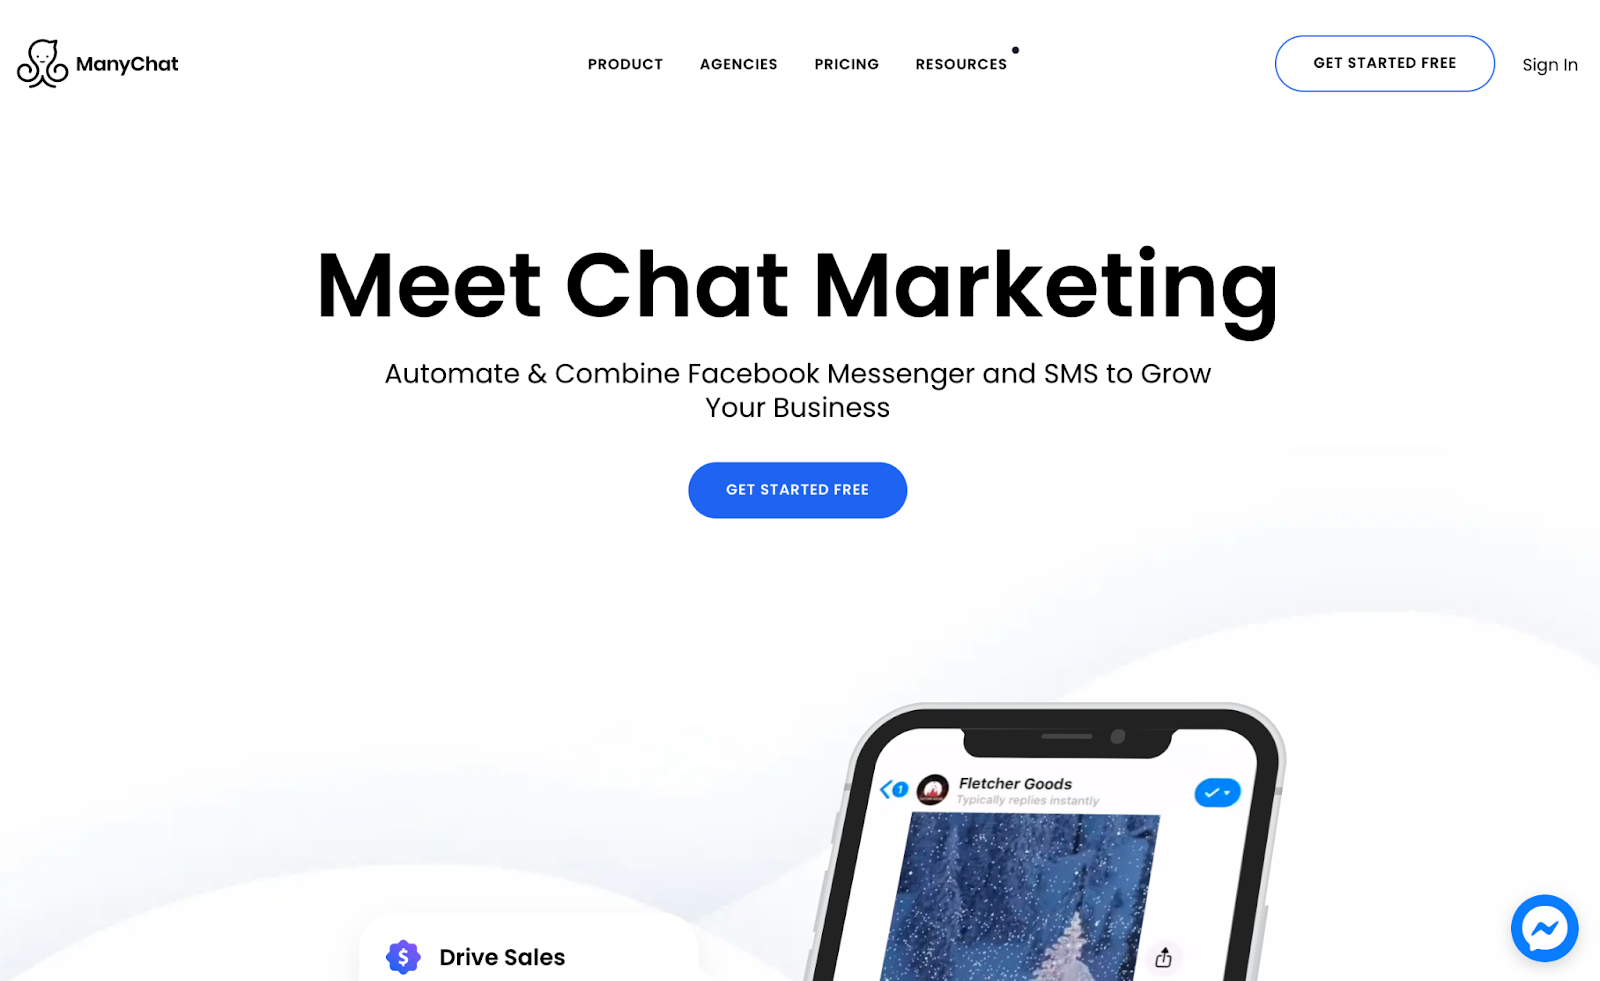 ManyChat marketing automation